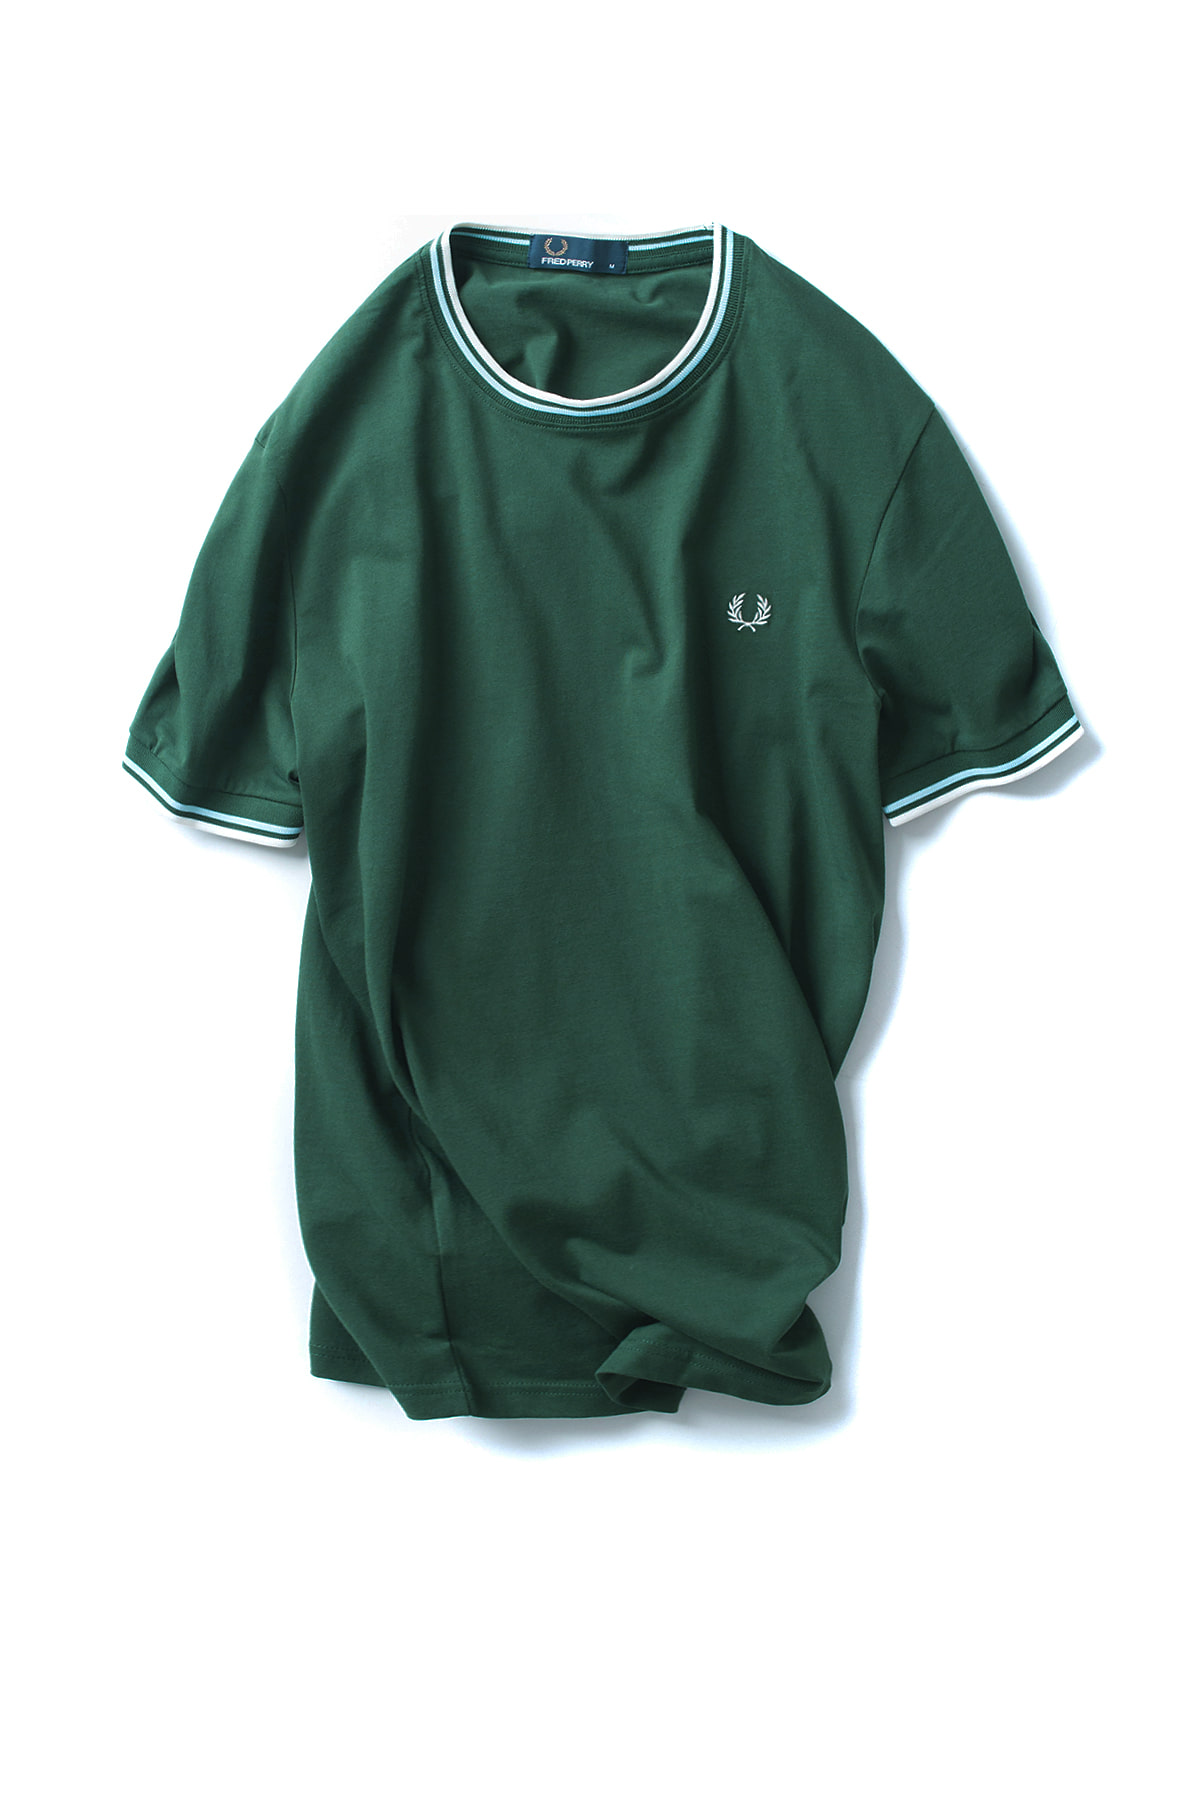 FRED PERRY : Twin Tipped T-Shirt (Ivy)